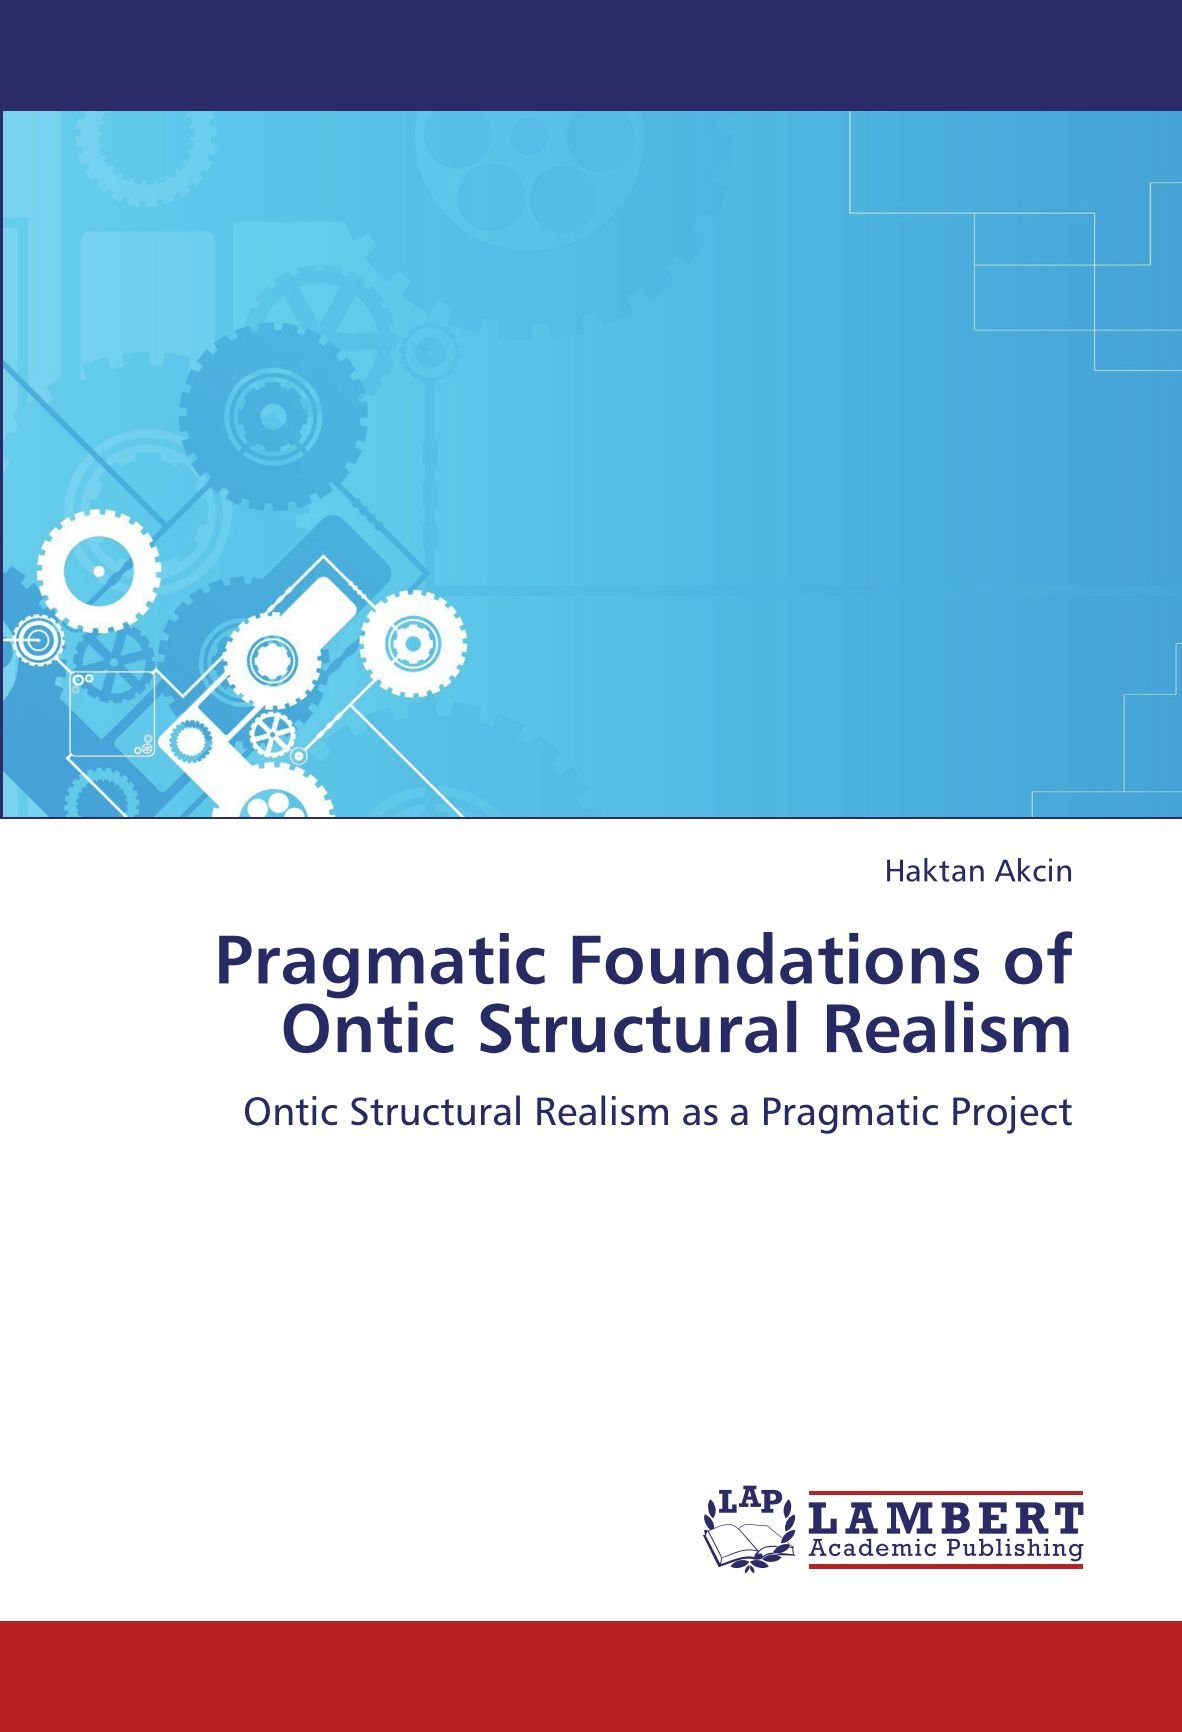 Pragmatic Foundations of Ontic Structural Realism: Ontic Structural Realism as a Pragmatic Project ebook